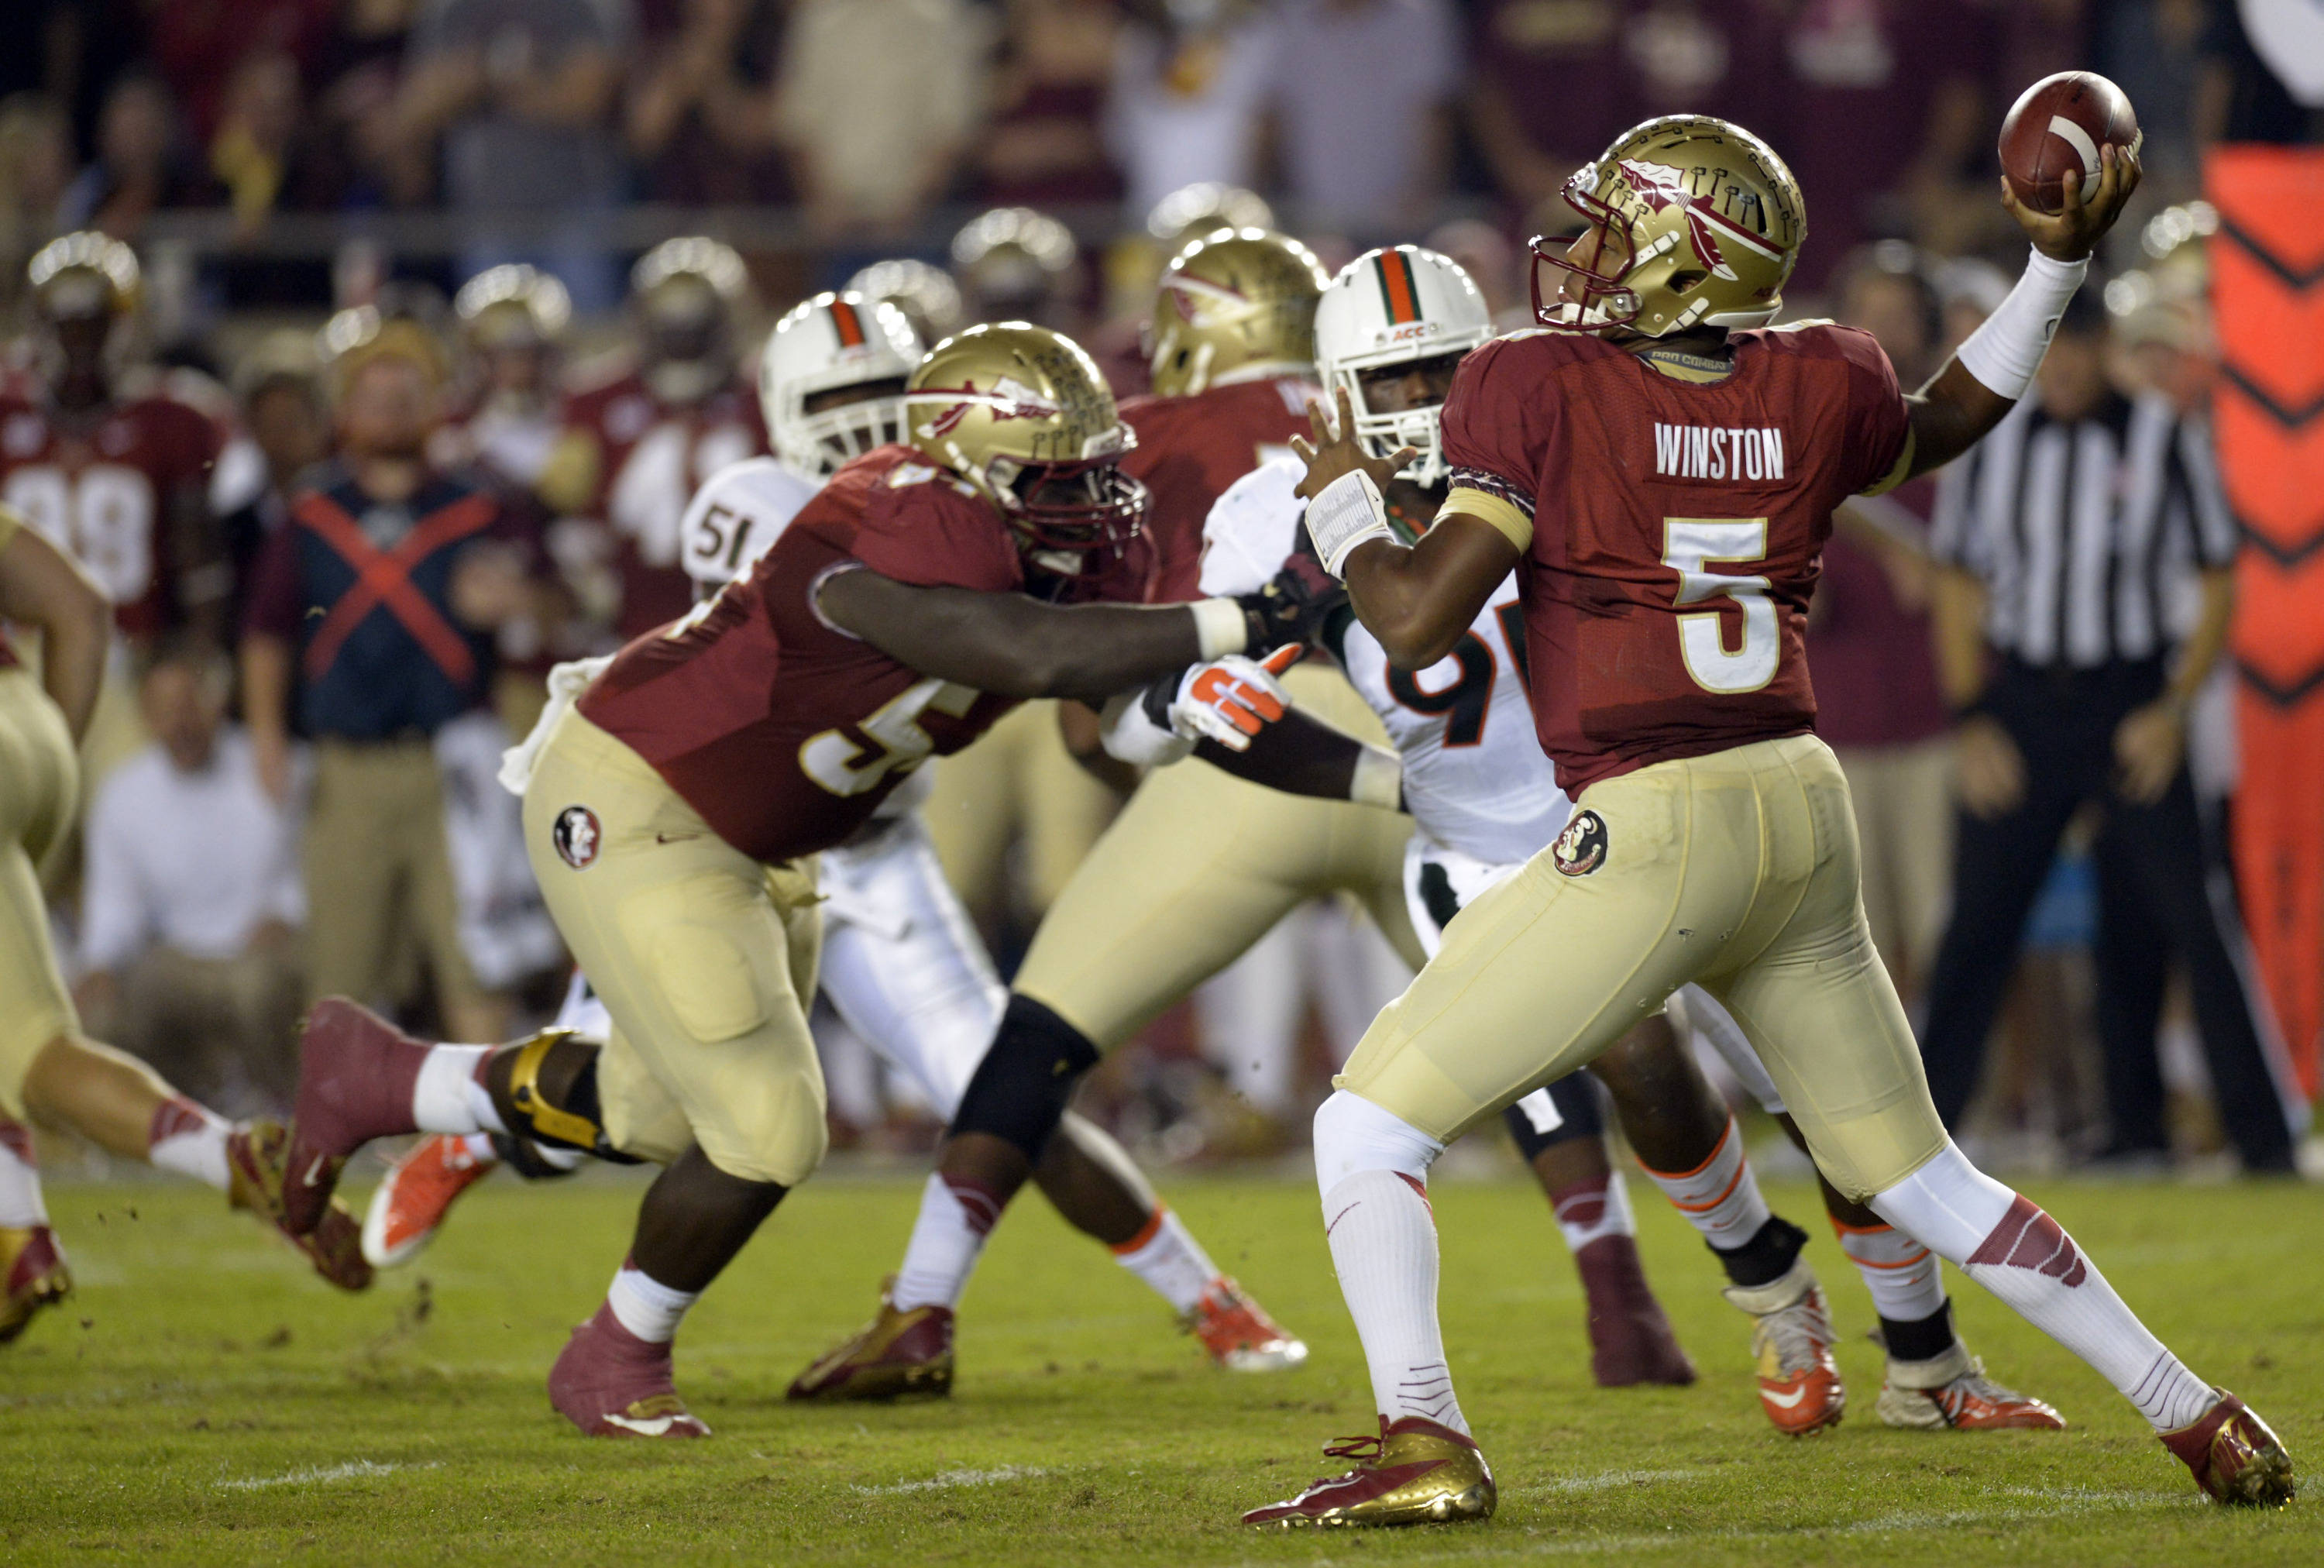 Florida State Seminoles quarterback Jameis Winston (5) passing against the Miami Hurricanes during the first quarter at Doak Campbell Stadium. Mandatory Credit: John David Mercer-USA TODAY Sports